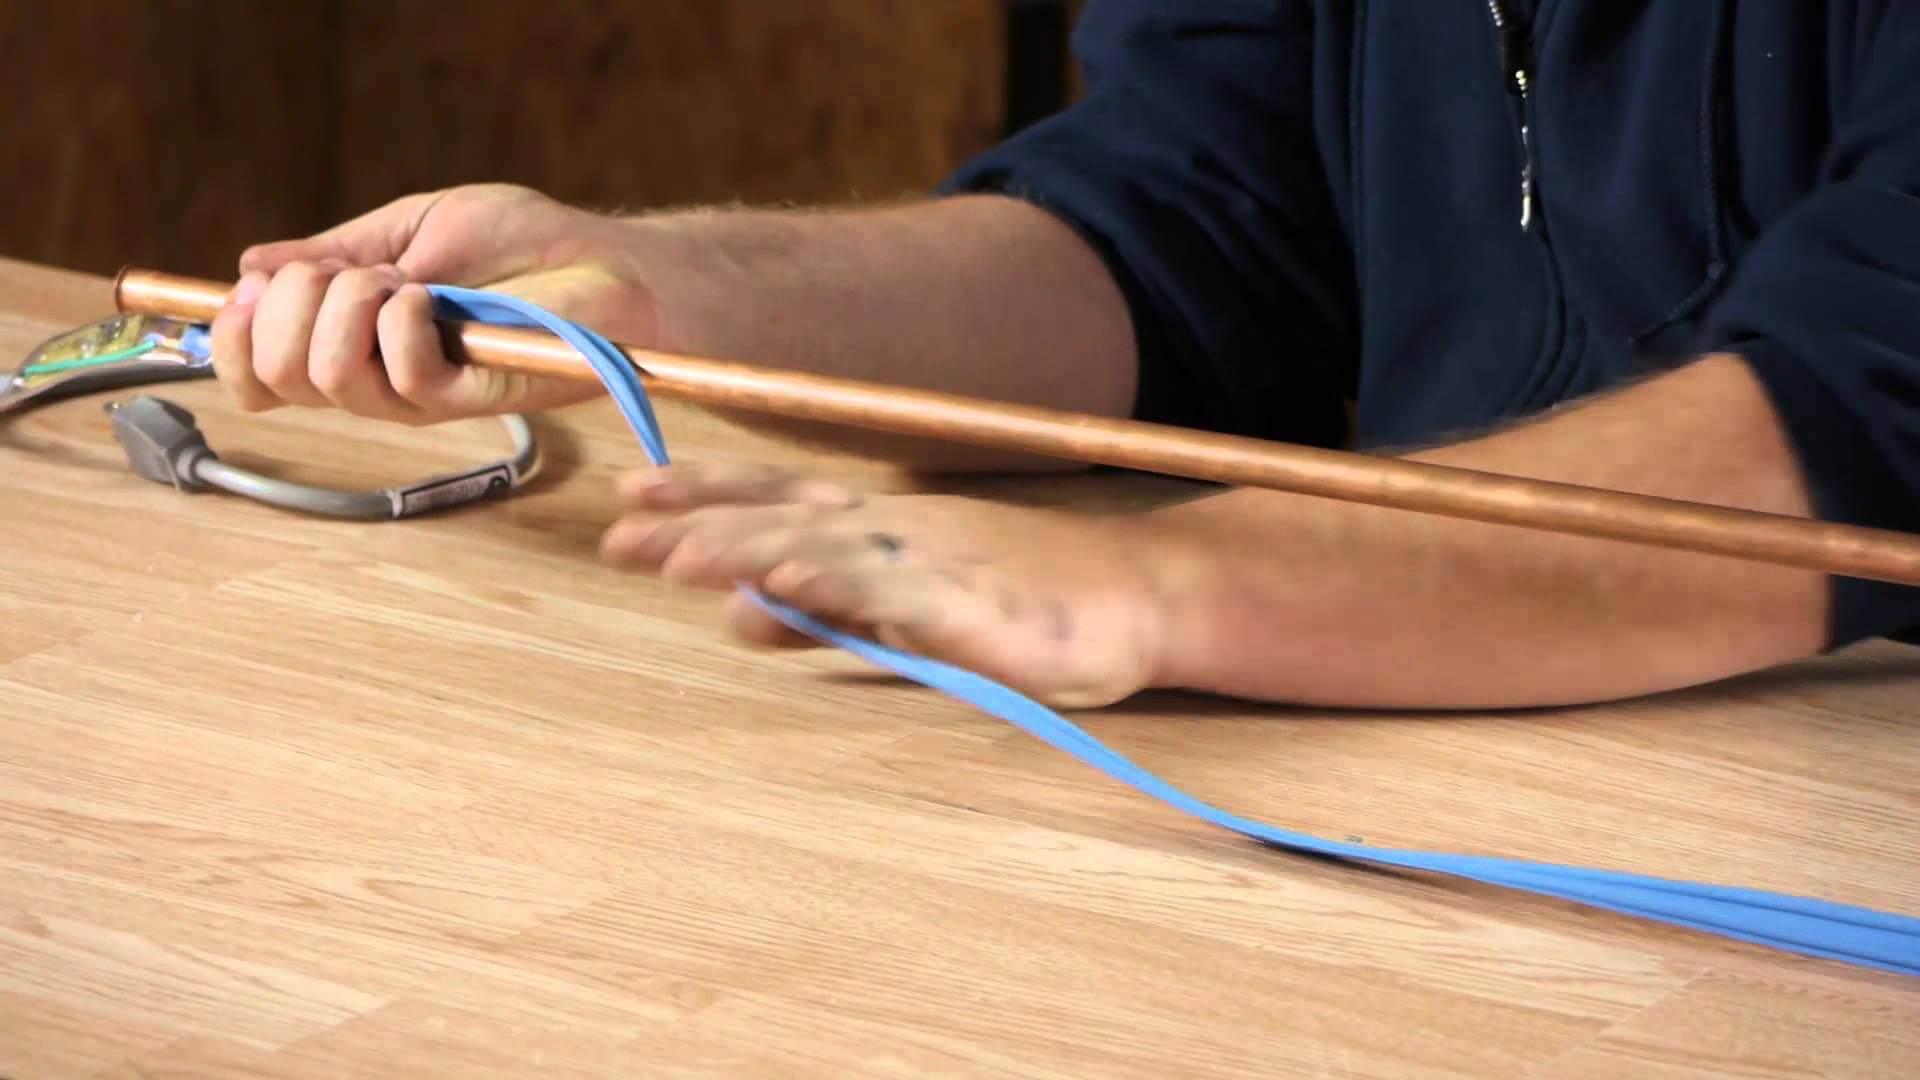 Electical heating coils around the pipe can be a huge game changer